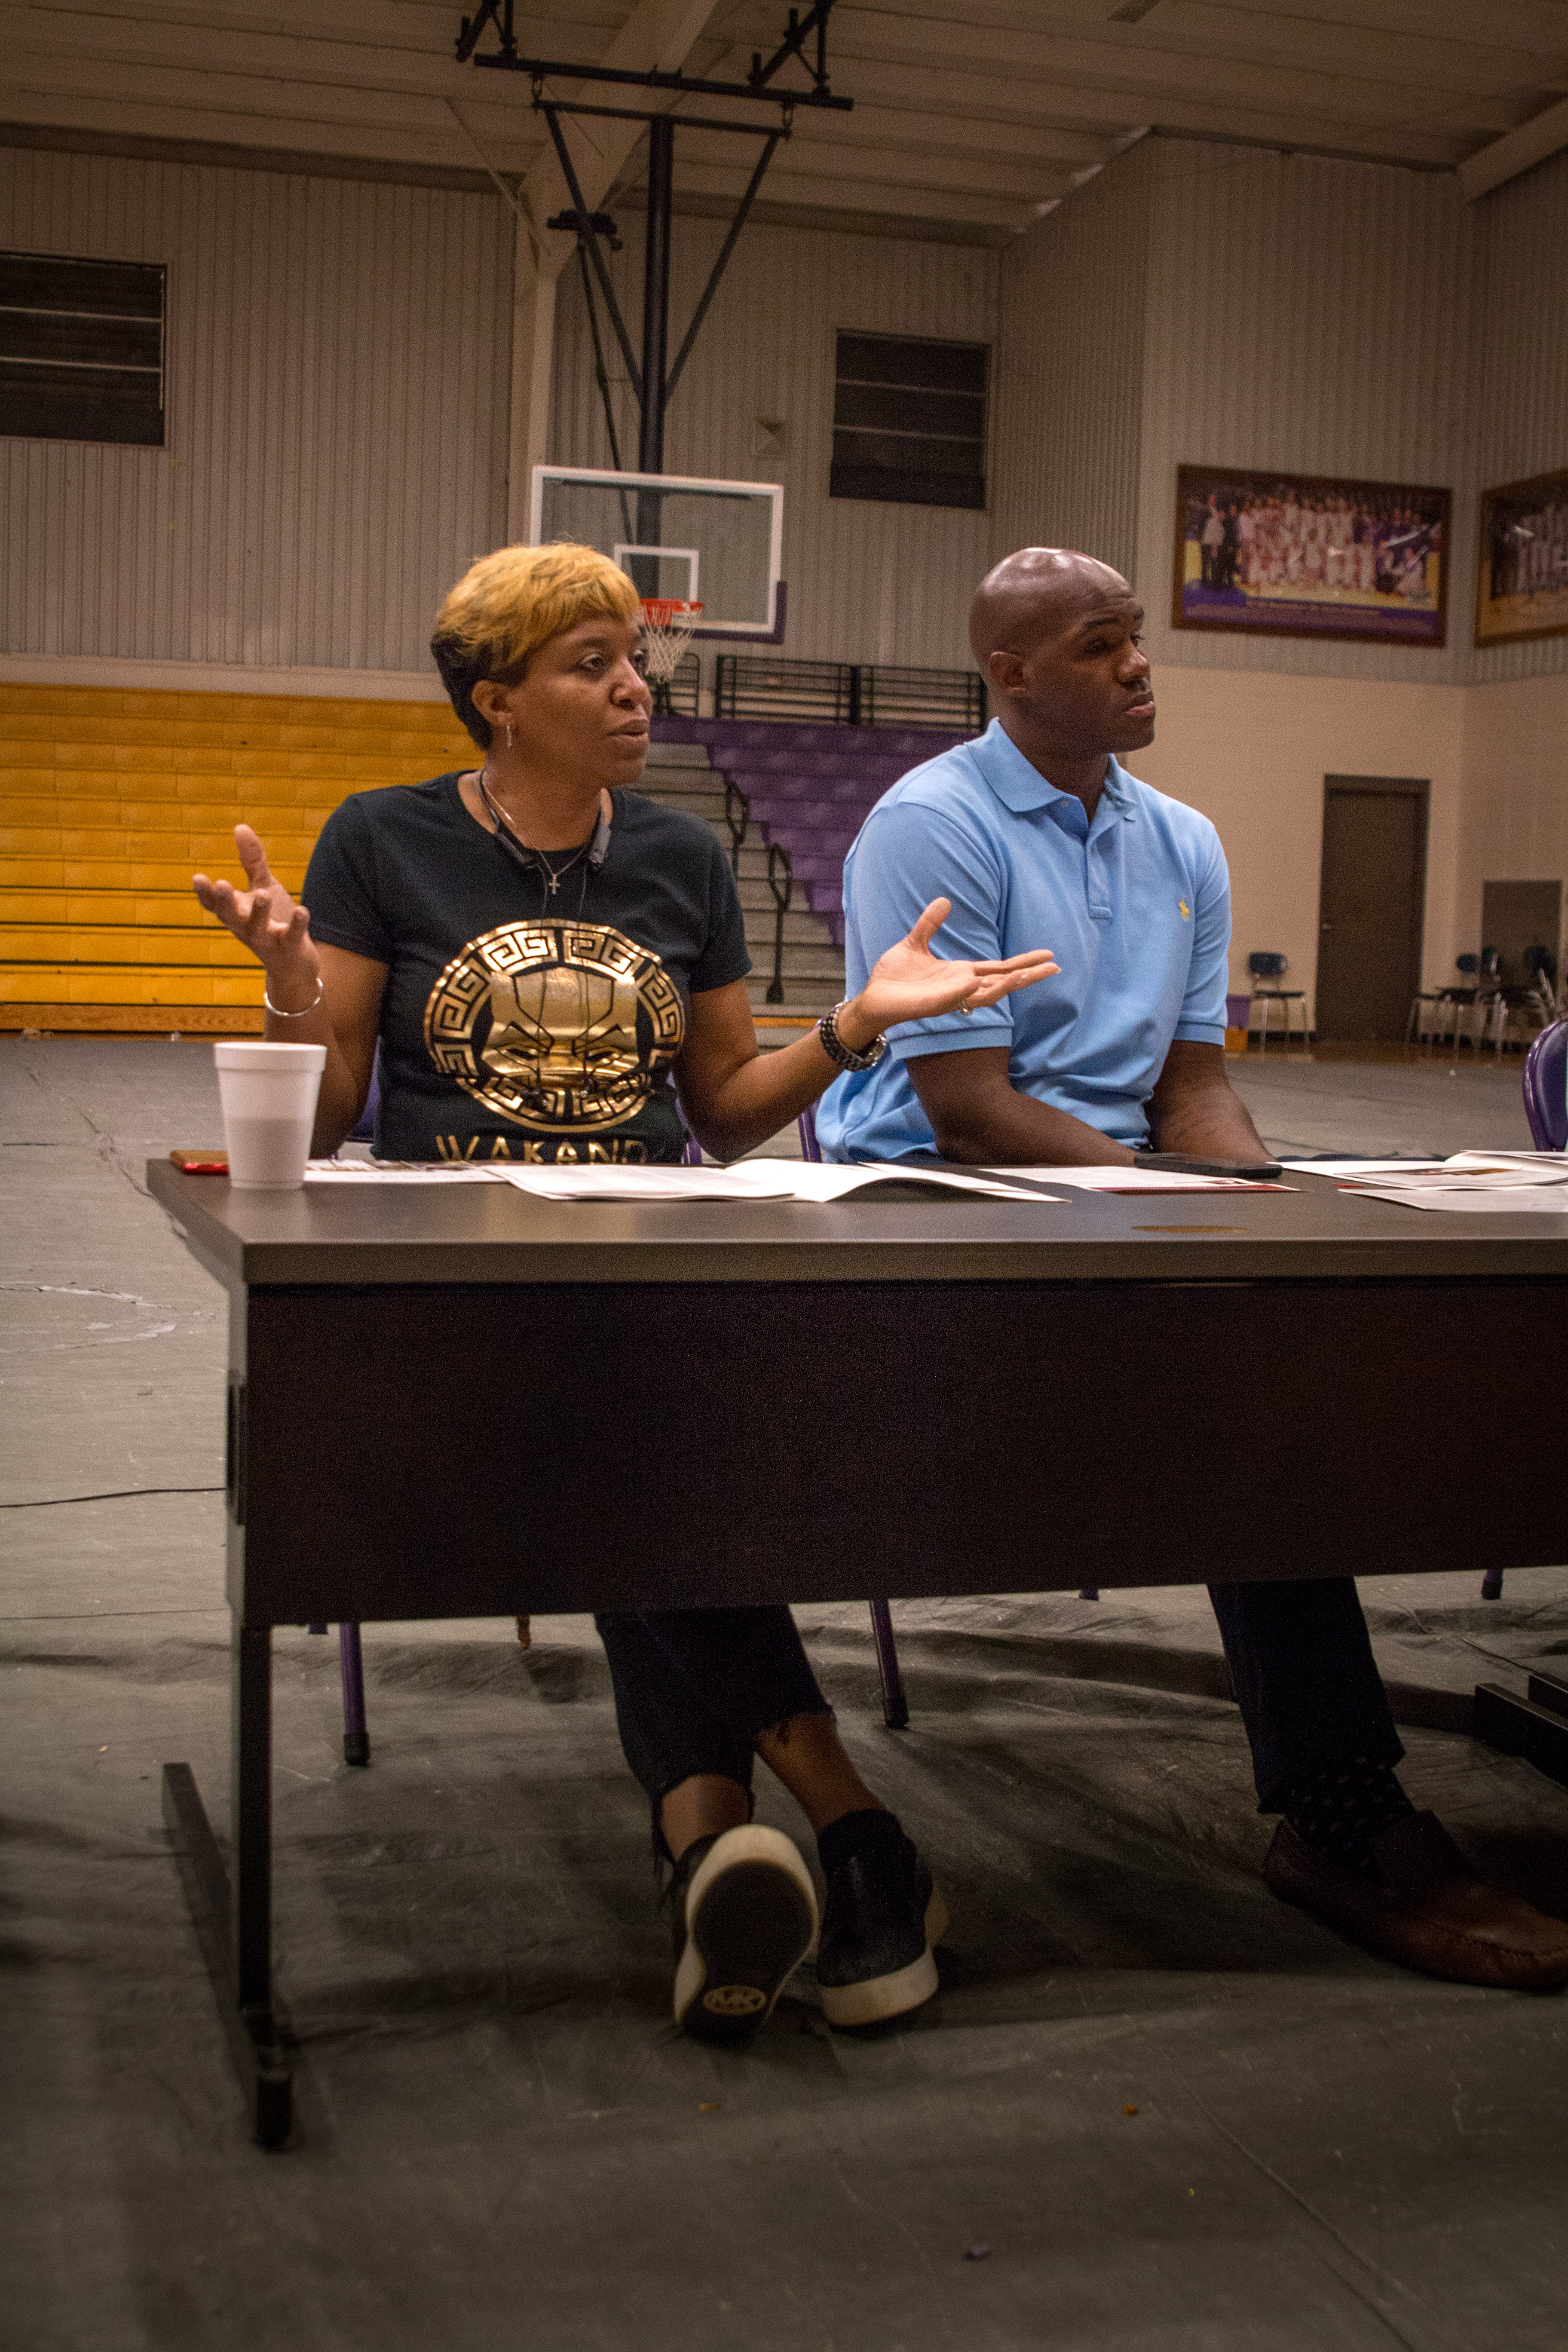 Dr. Leslie Ford, principal at R.C. Hatch High School in Uniontown, served as a panelist on this Day 3 tour stop.